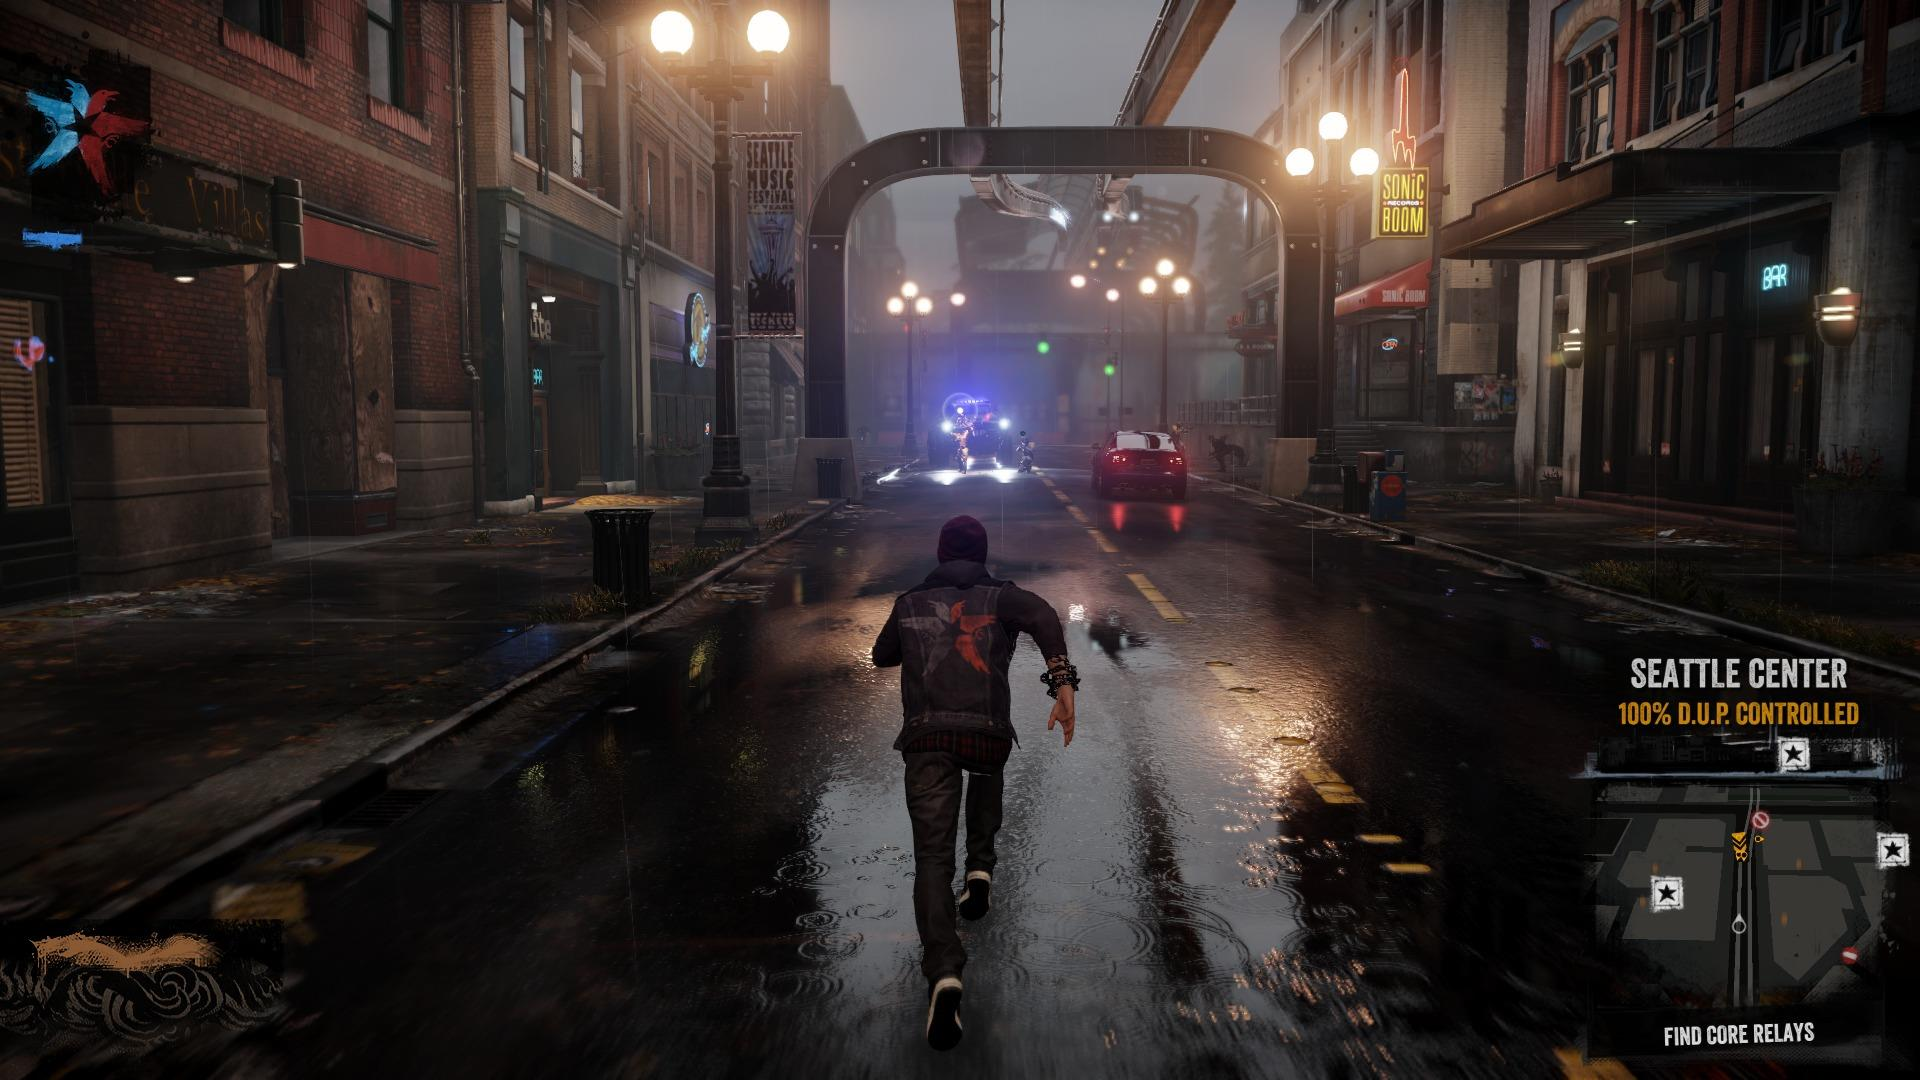 Killzone Shadow Fall Ps4 Wallpaper New Infamous Second Son In Game Gif Amp Screenshots Show